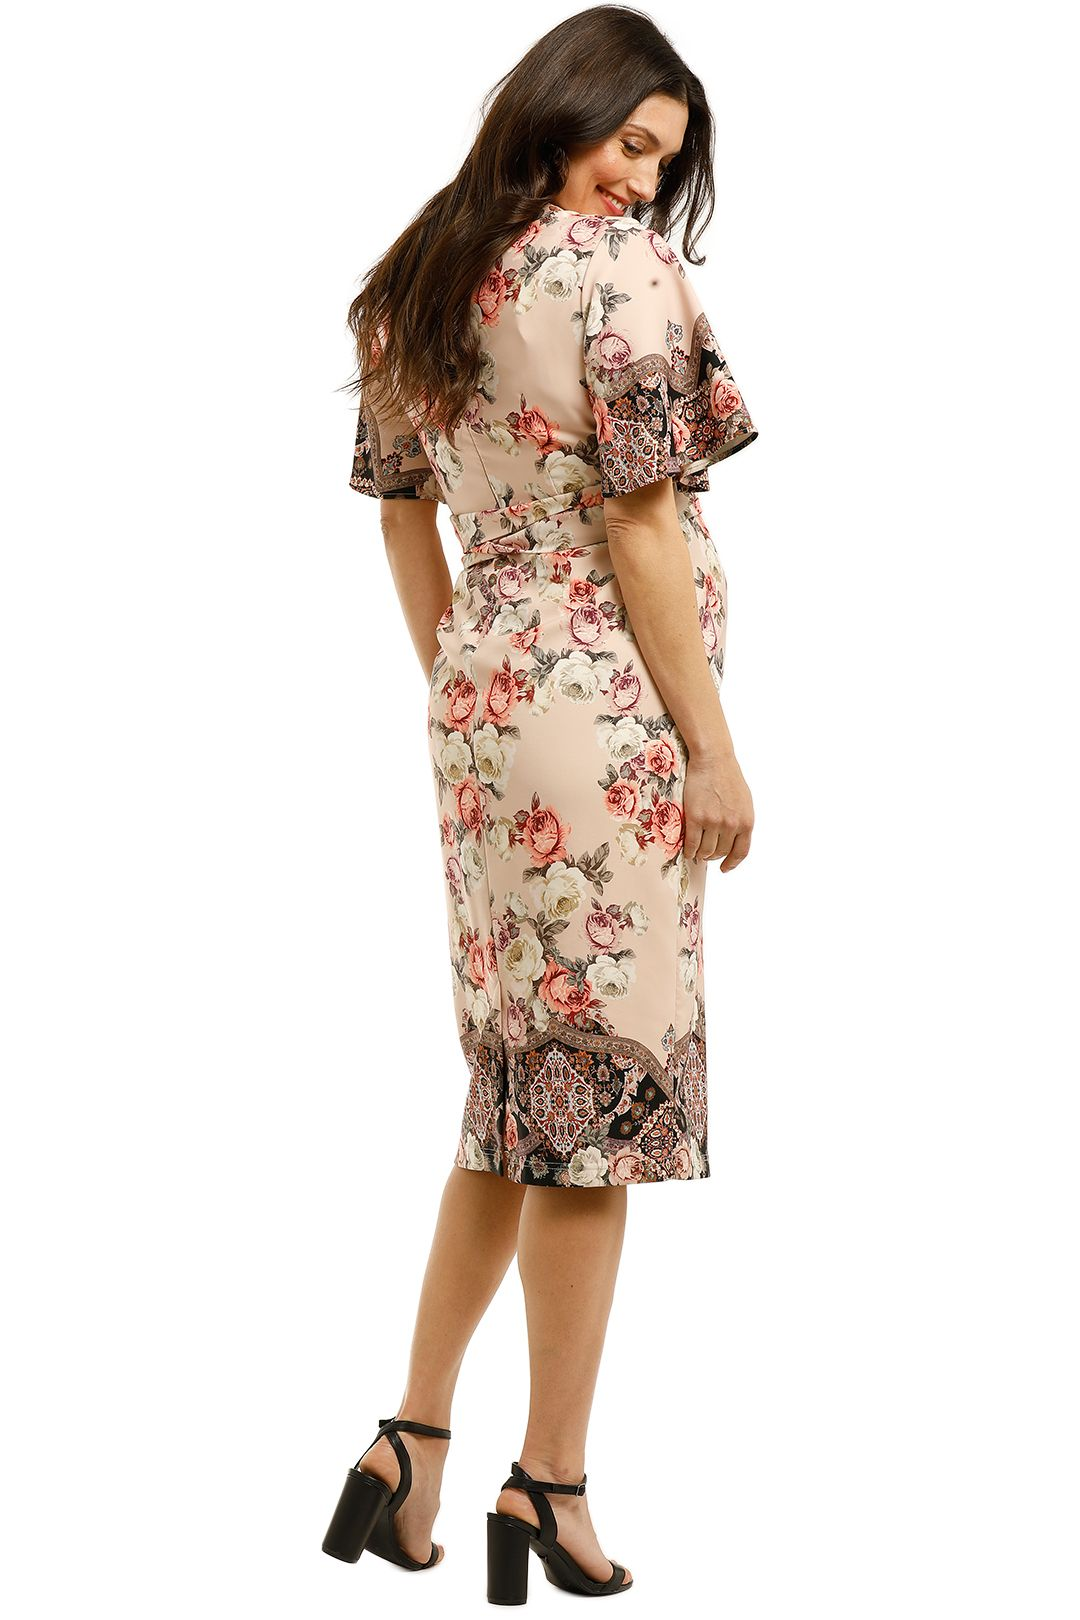 Pasduchas-Chichi-Sleeve-Midi-Dress-Floral-Blush-Back